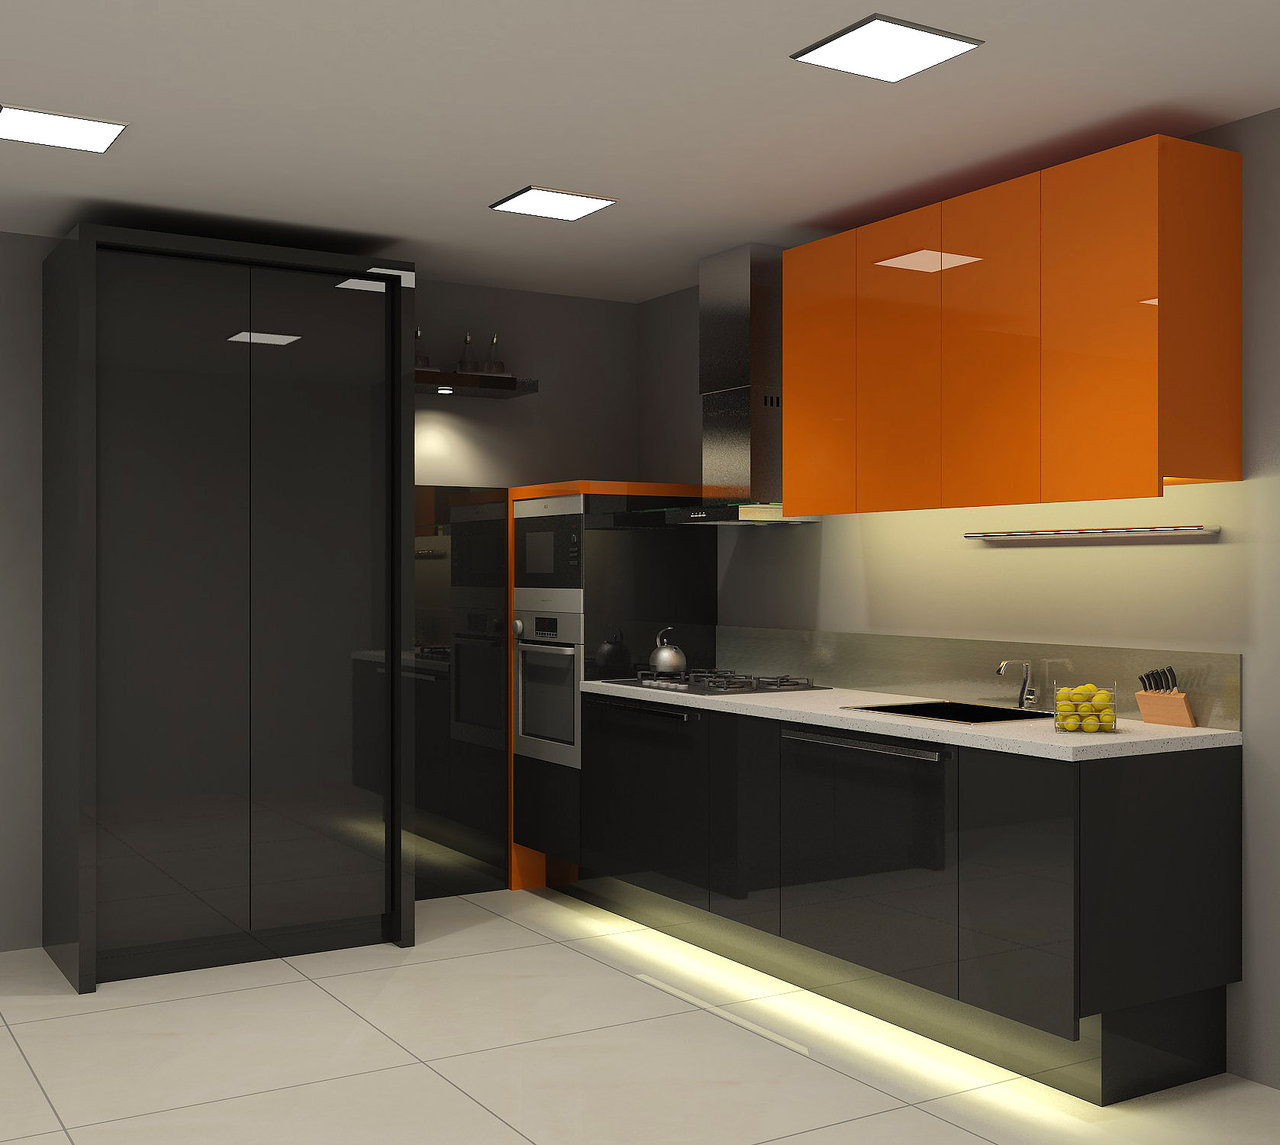 Best Modern Small Kitchen Design: Orange Kitchens